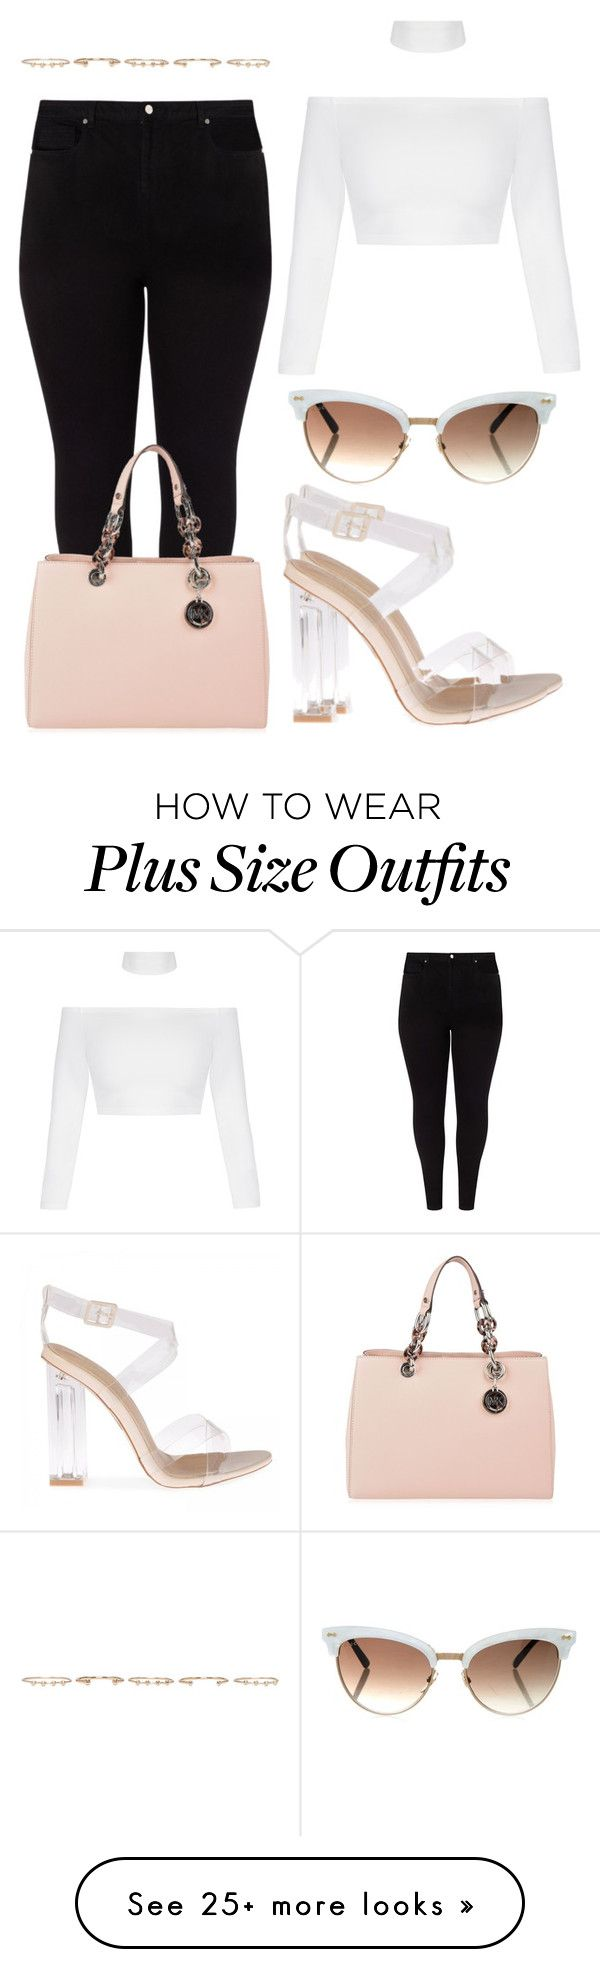 """Untitled #1908"" by memelovely on Polyvore featuring Studio 8, Gucci, Isabel Marant and MICHAEL Michael Kors"